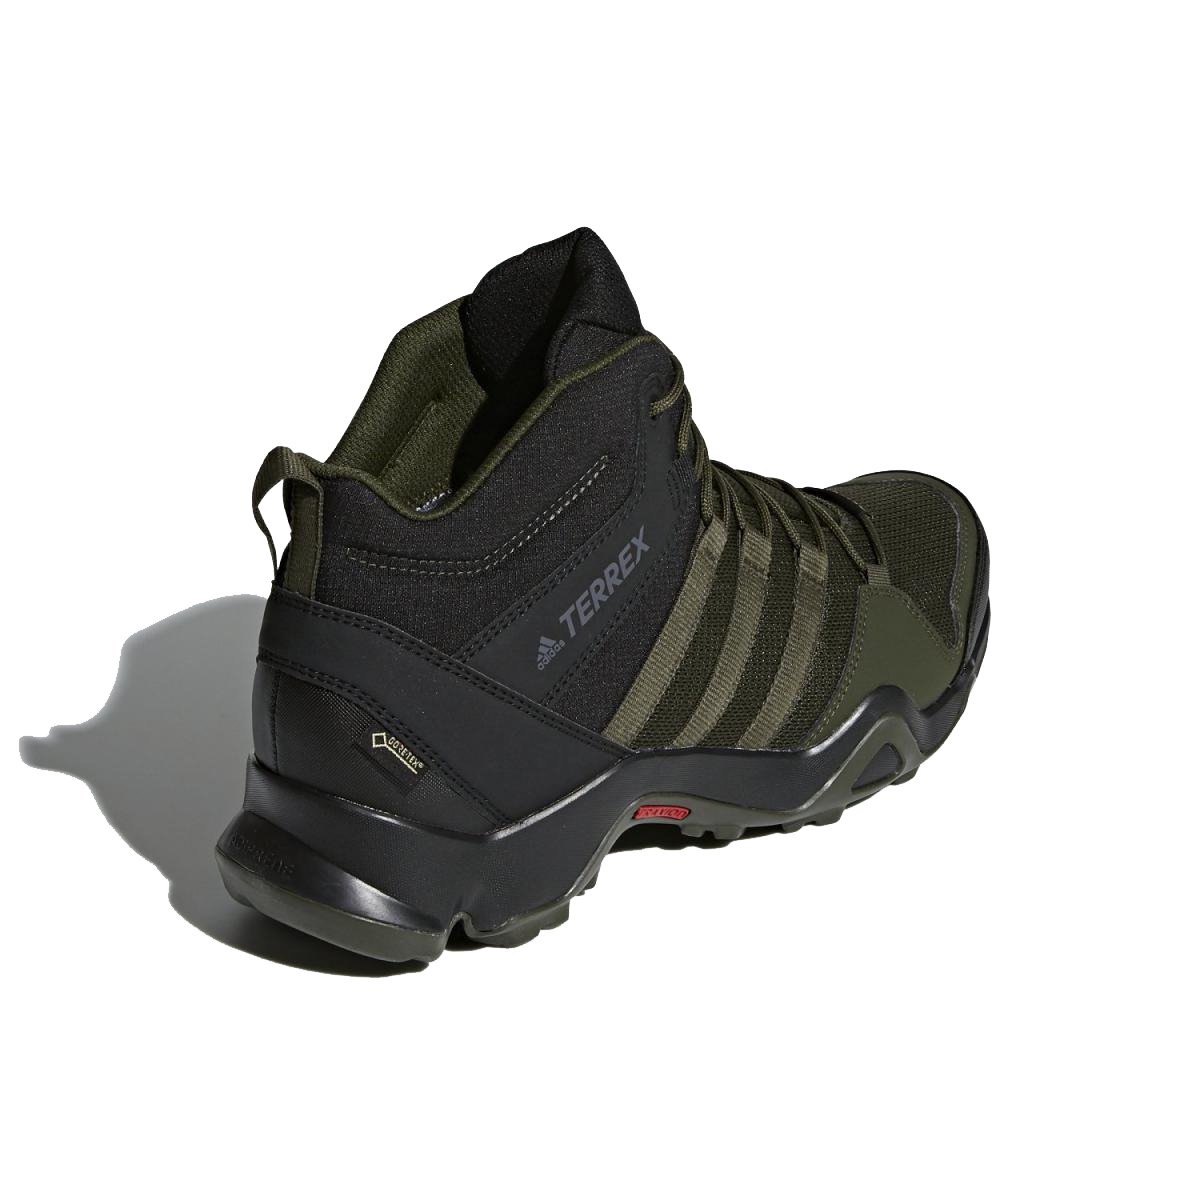 Sombra Jarra agitación  Adidas AC8036 Men's Terrex AX2R Mid GTX Night Cargo / Black Shoes | eBay